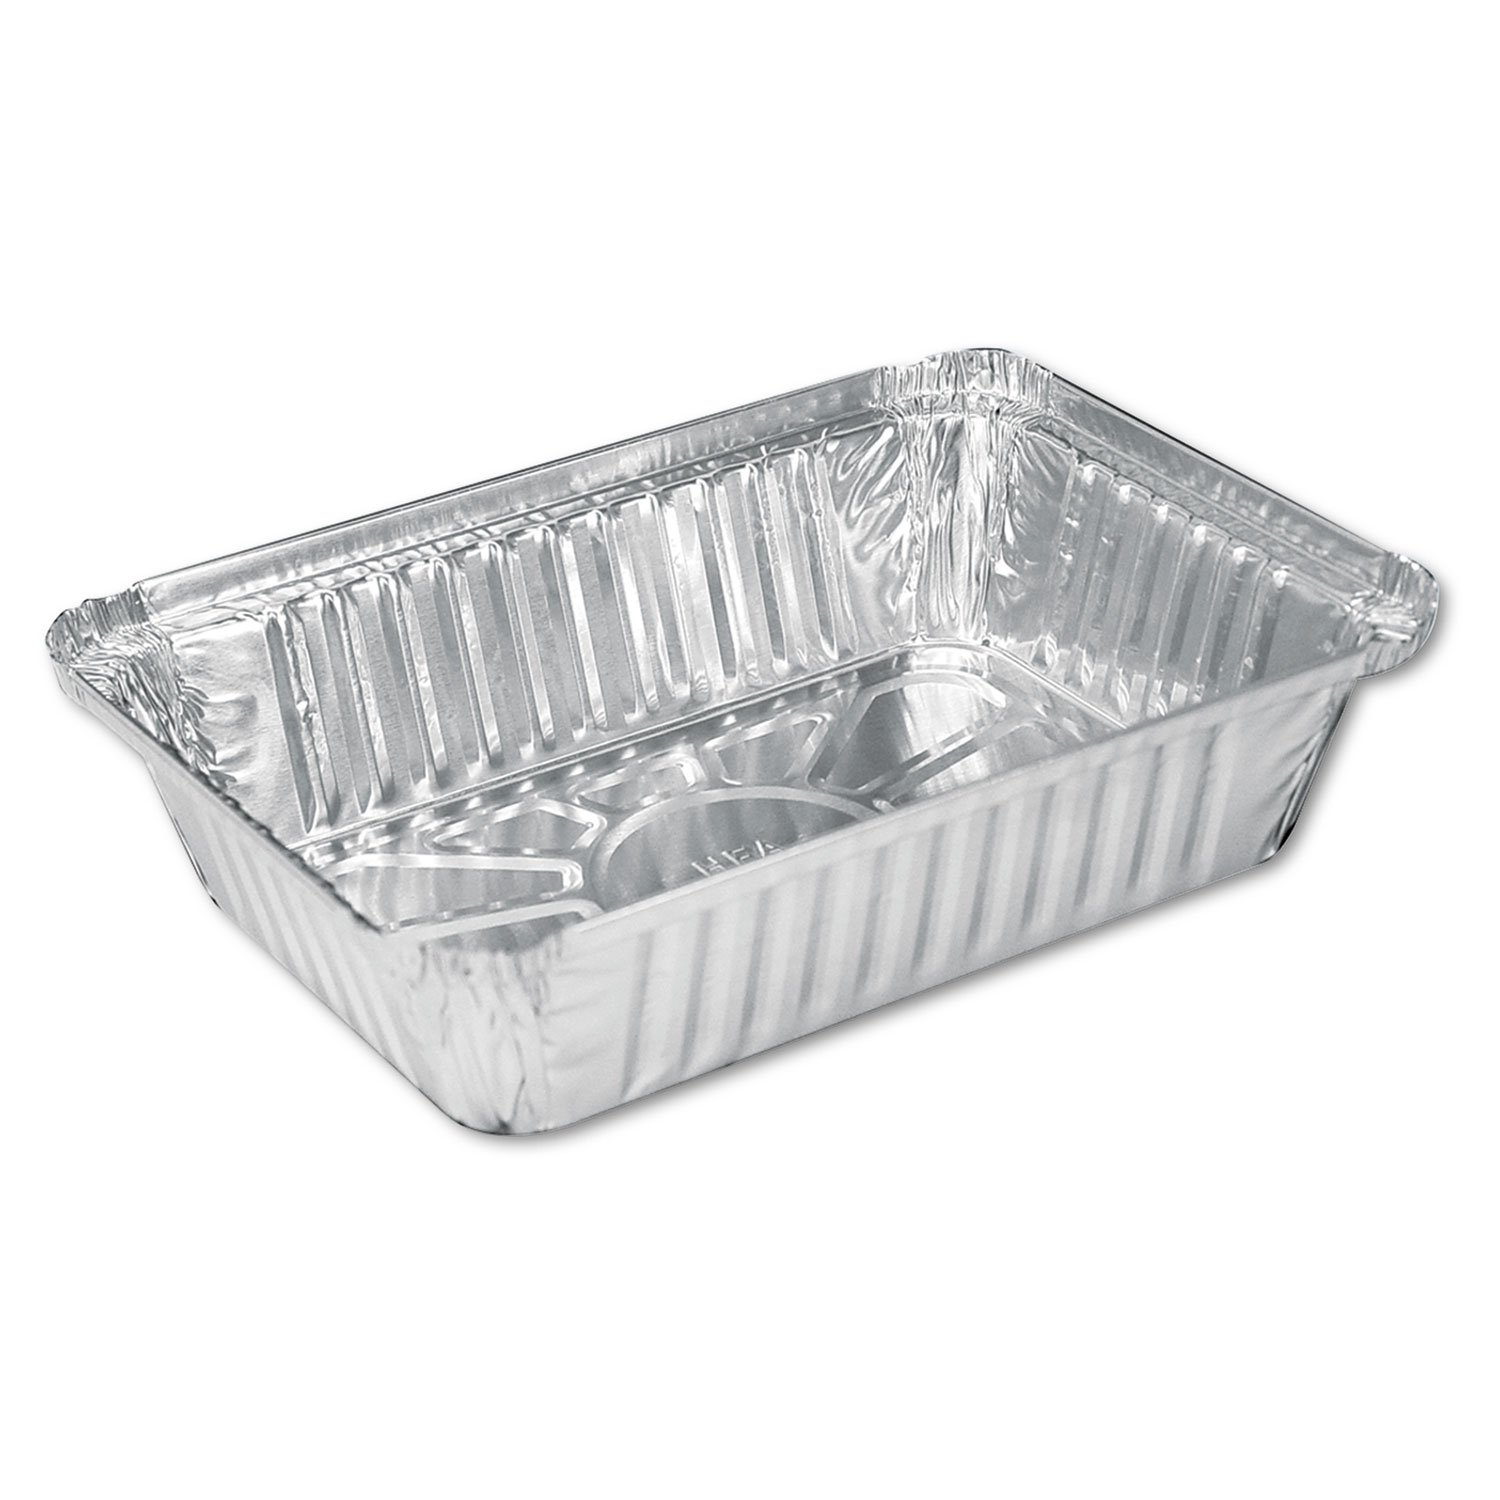 Aluminum Oblong Pan, 36oz, 8 1/2 X 5 15/16 X 1 13/16, 500/carton By: Handi-Foil of America by COU